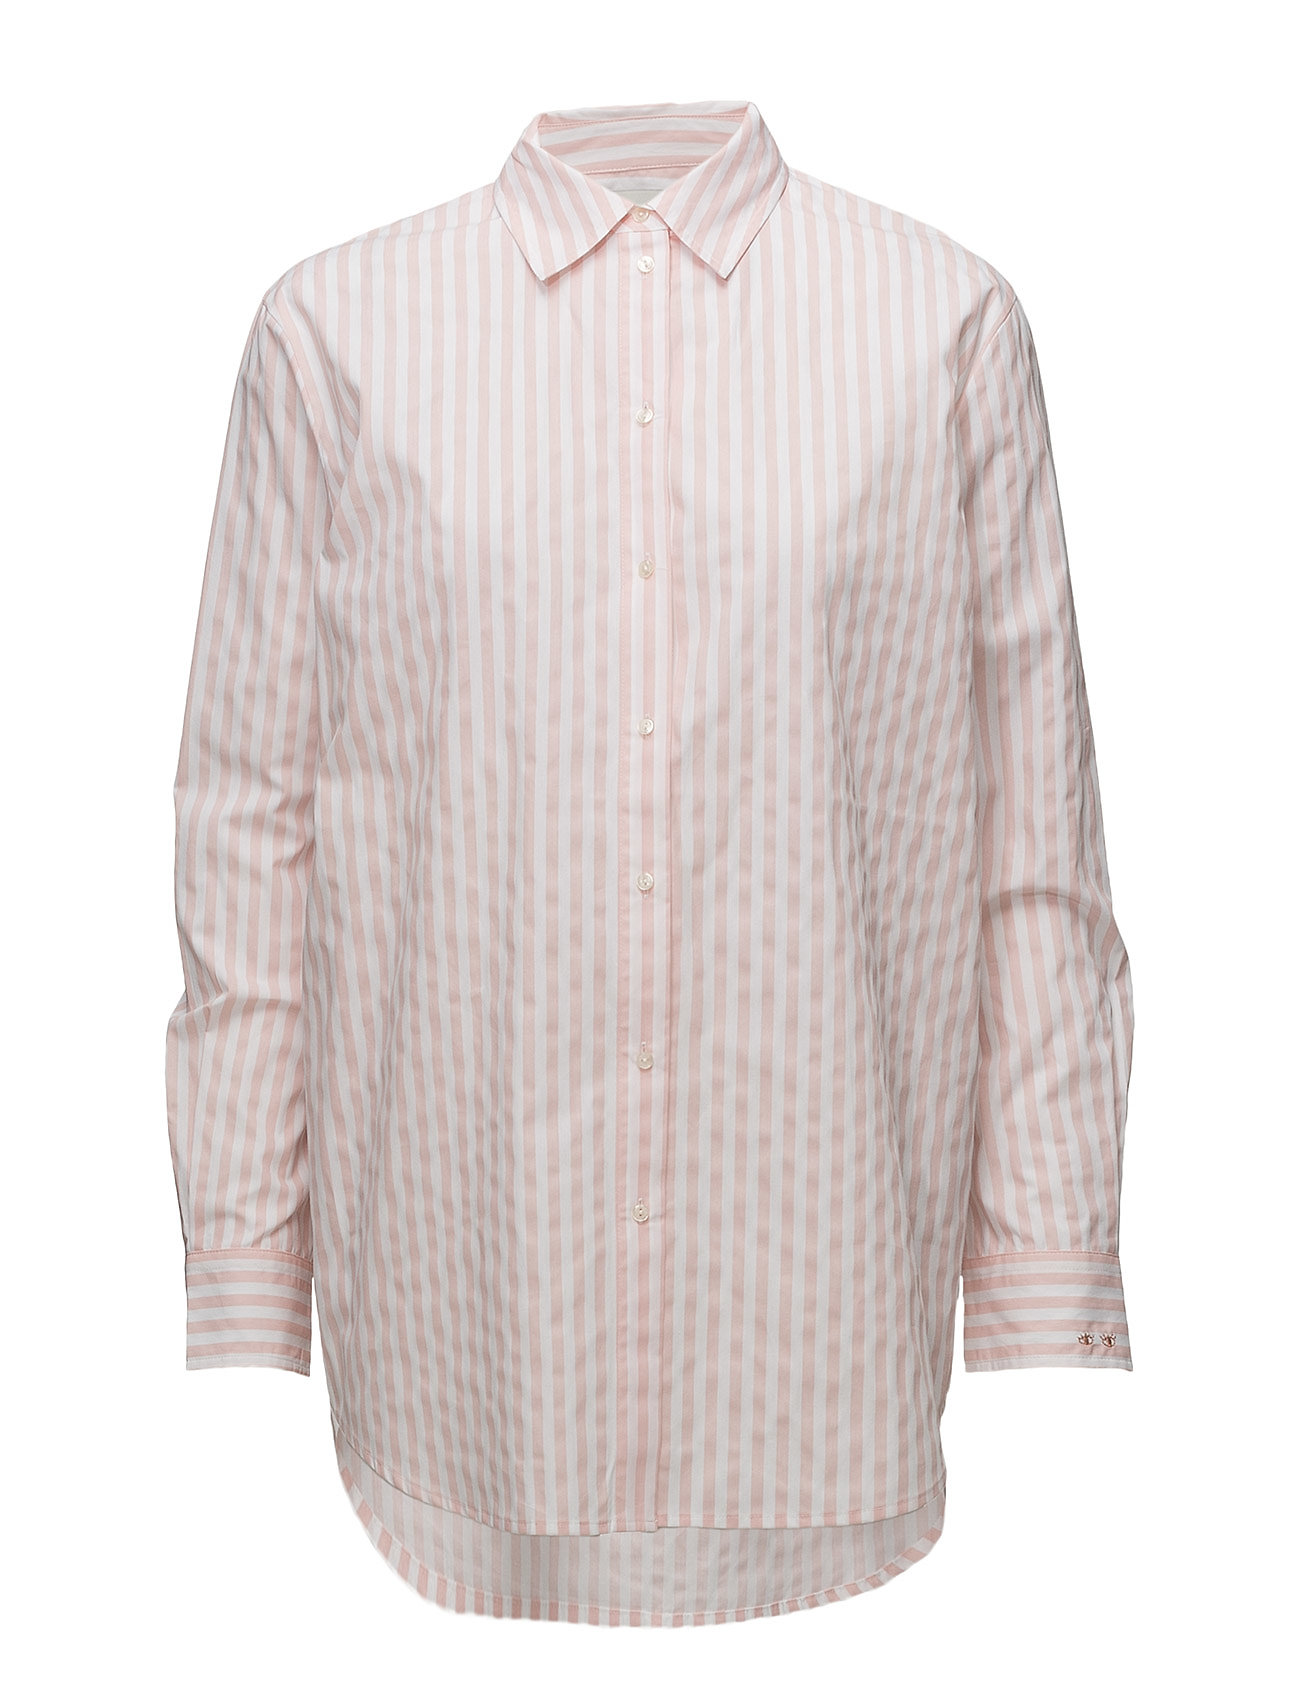 Scotch & Soda Shirt with small embroidery detail - COMBO B